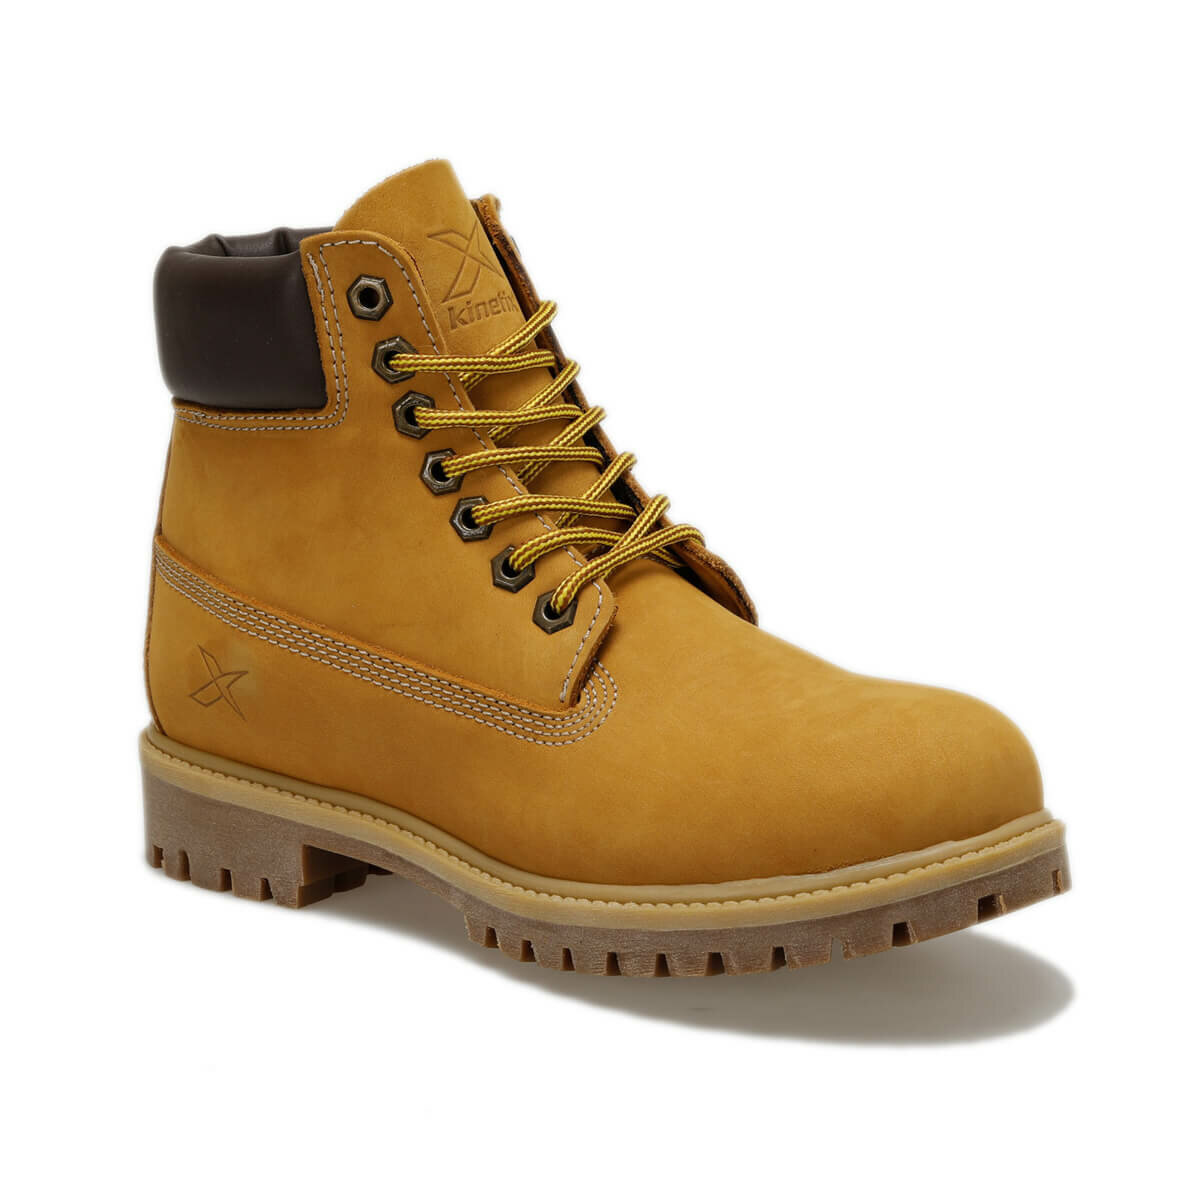 FLO A1305005 Yellow Men Boots KINETIX